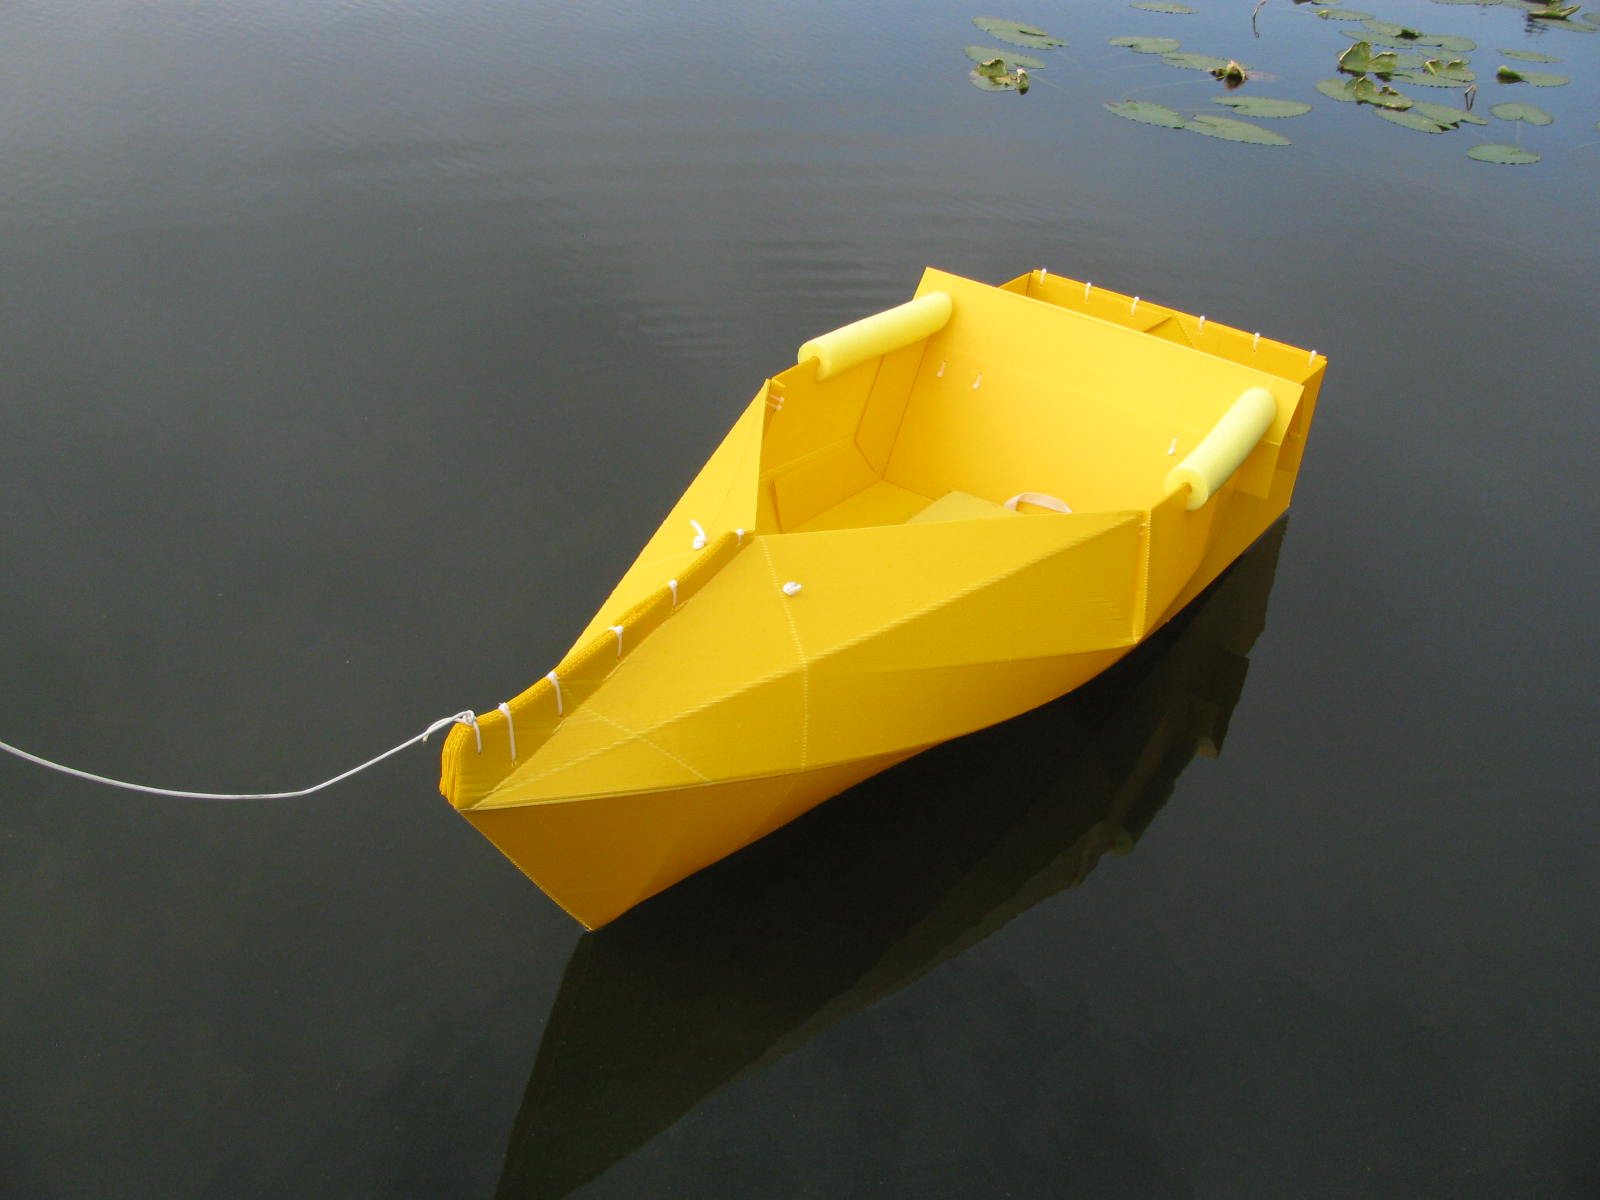 Micro Boats - Creative Ideas | Elkins DIY